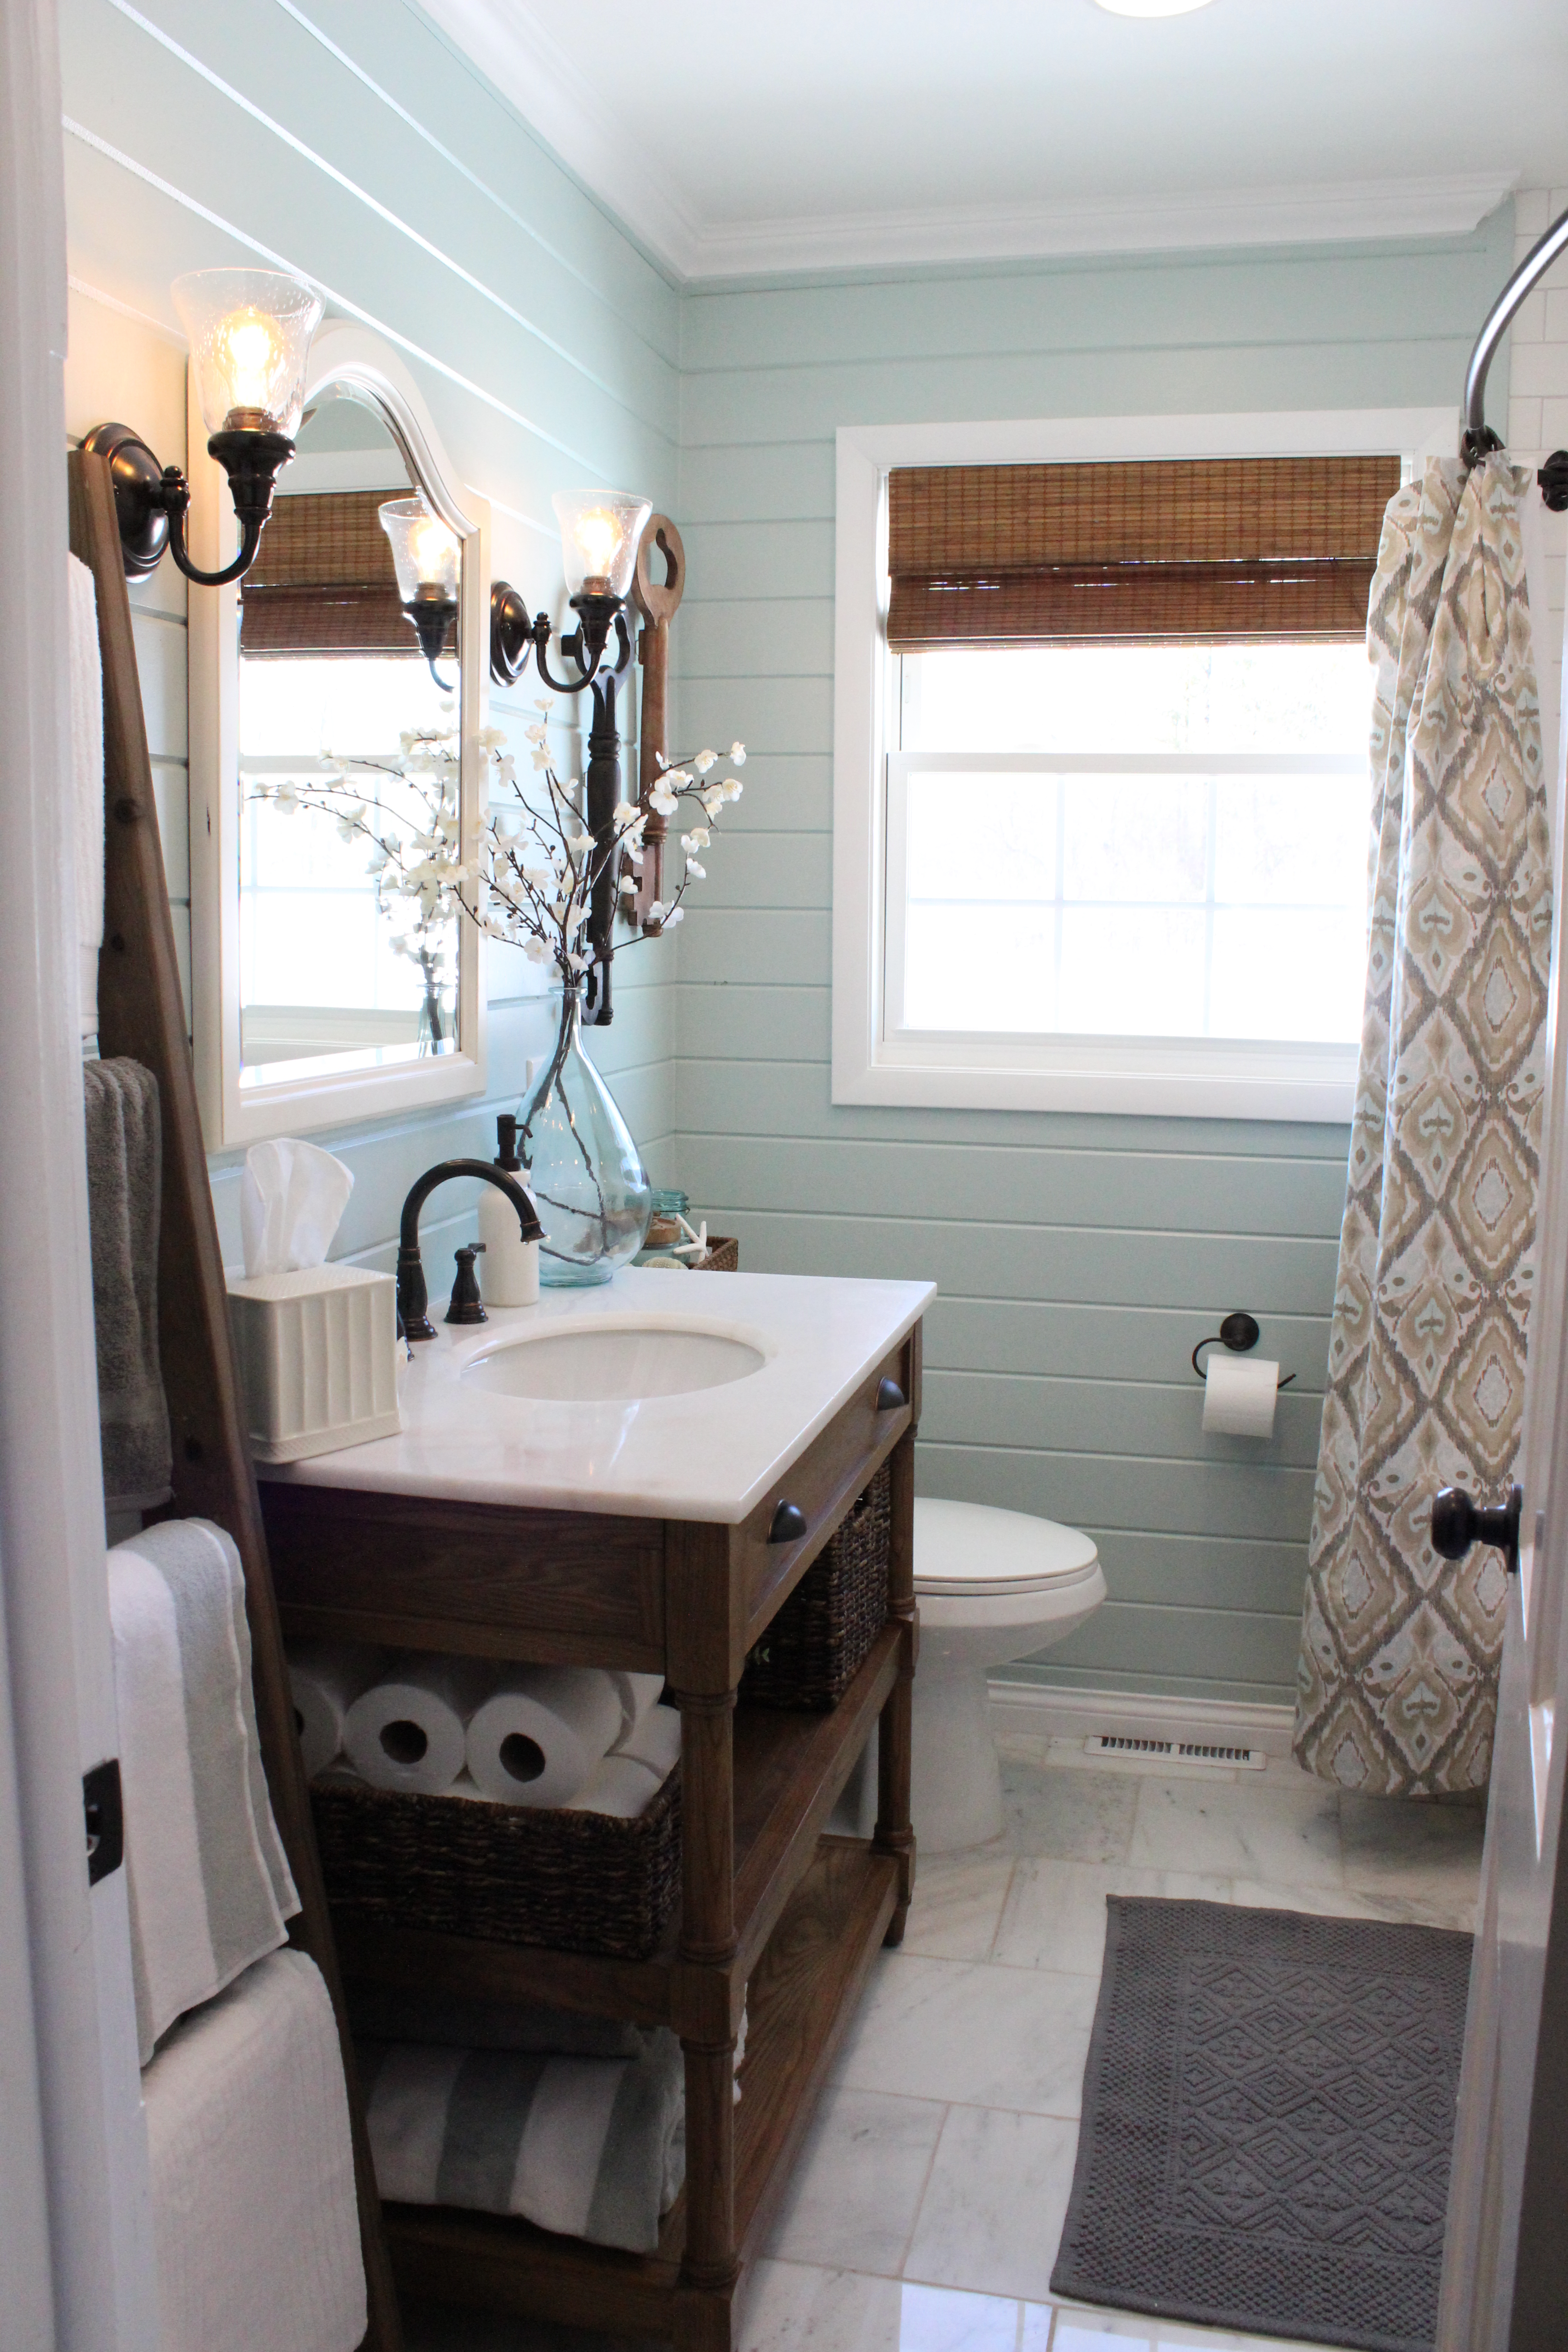 Benjamin moore palladian blue bathroom - Since The Last Bathroom Update We Added Our Diy Towel Ladder Step By Step Here And Decorated The Vanity With Baskets Towels Etc